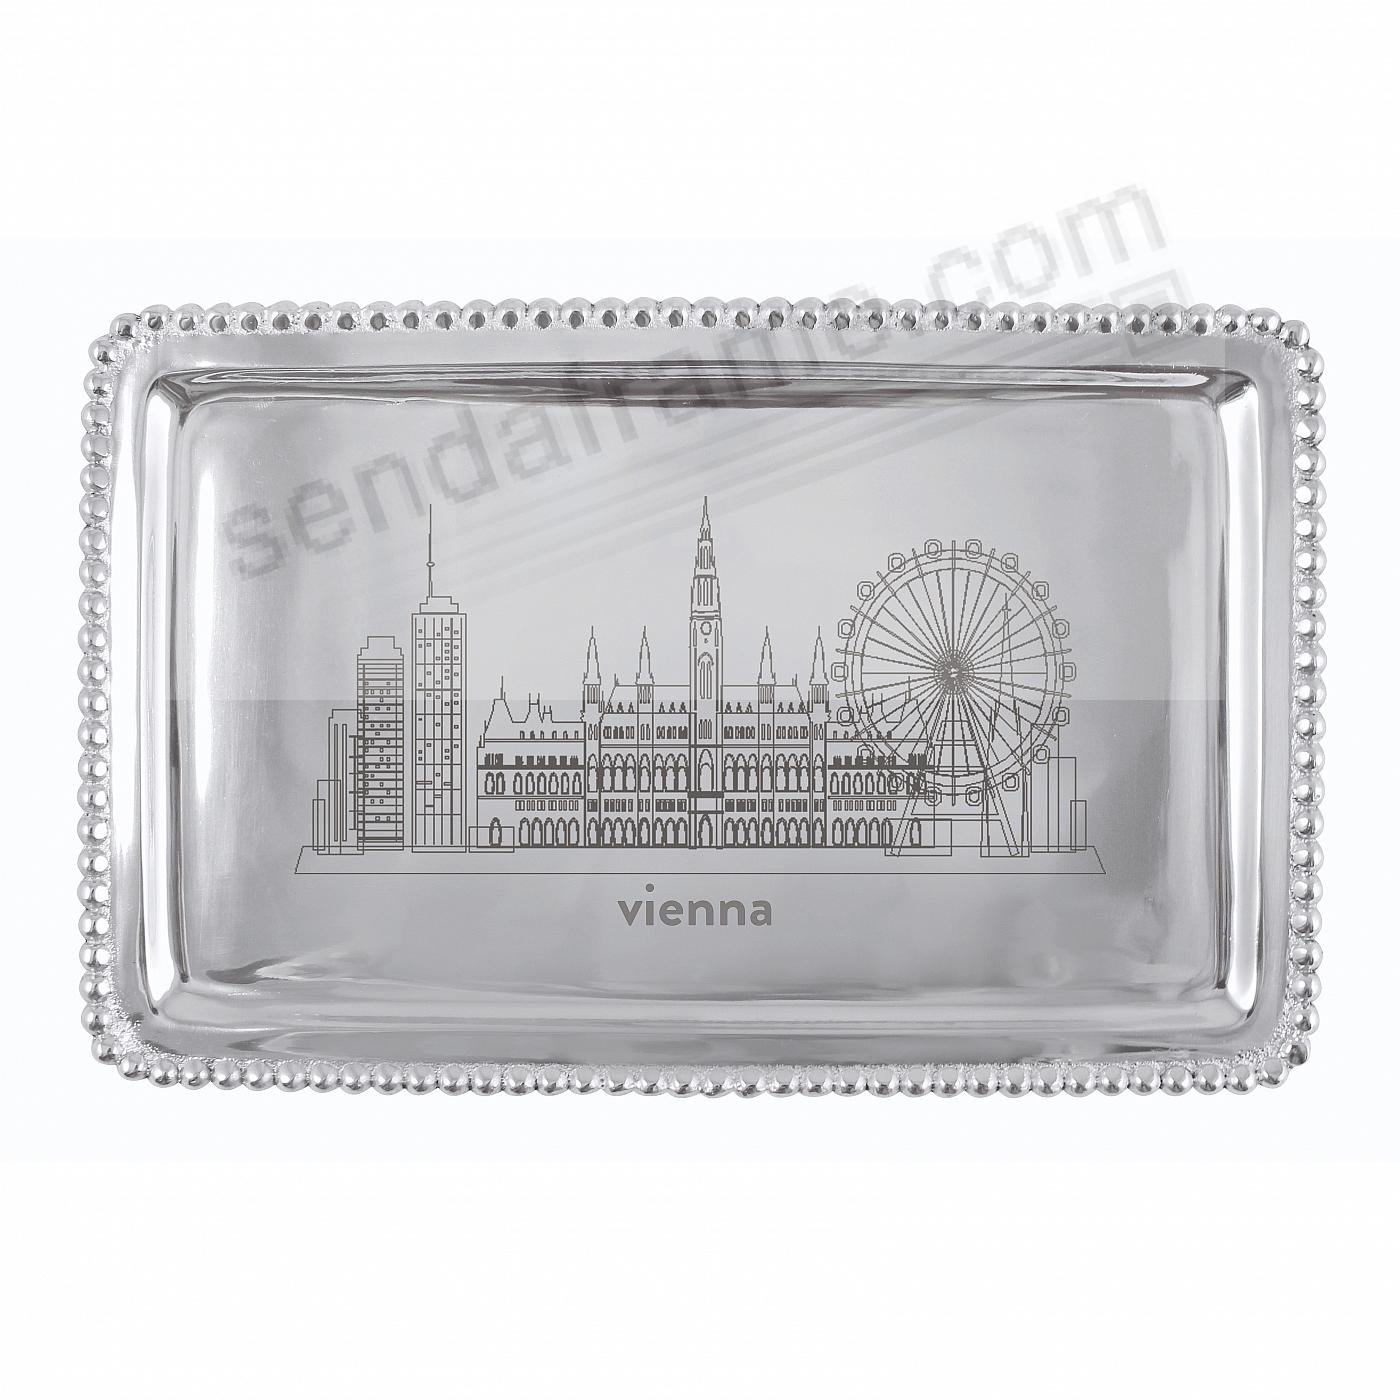 The VIENNA-AUSTRIA CITYSCAPE BEADED BUFFET TRAY crafted by Mariposa®